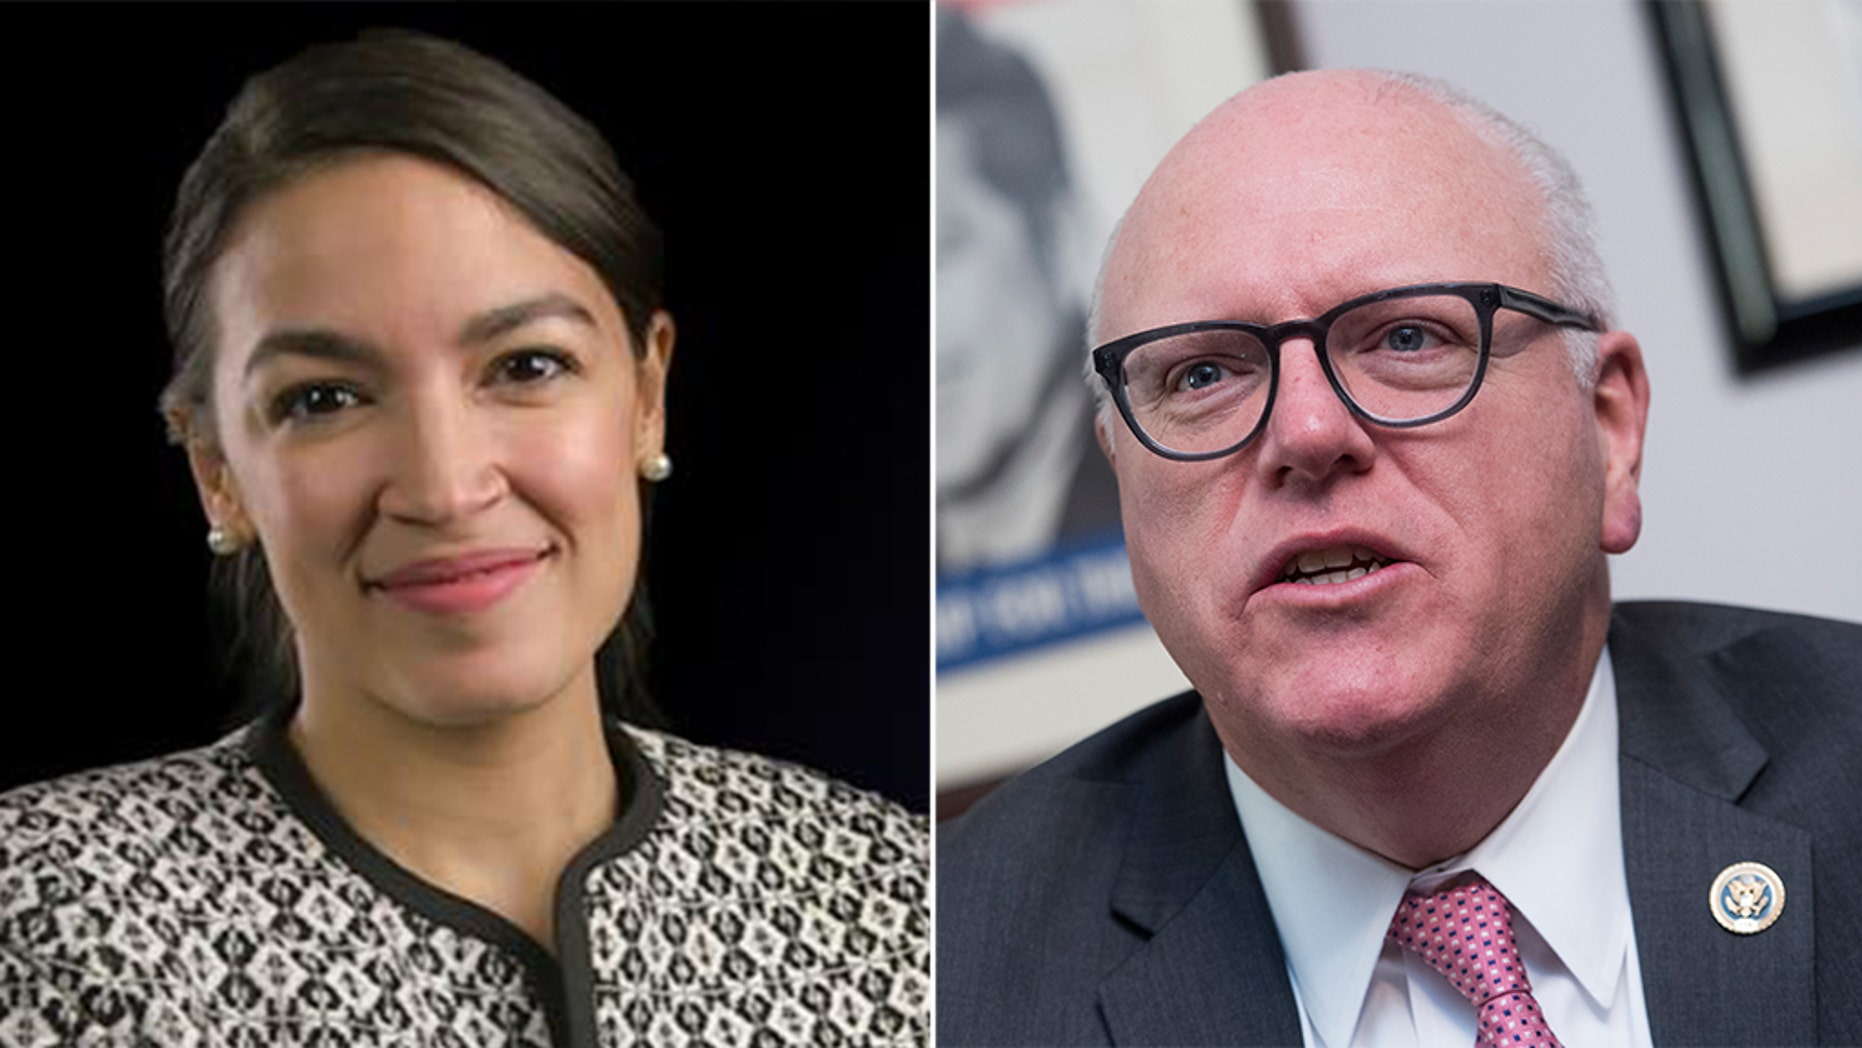 House Democratic Caucus Chairman Joe Crowley, D-N.Y., right, lost in a stunning primary defeat to political newcomer Alexandria Ocasio-Cortez, left.